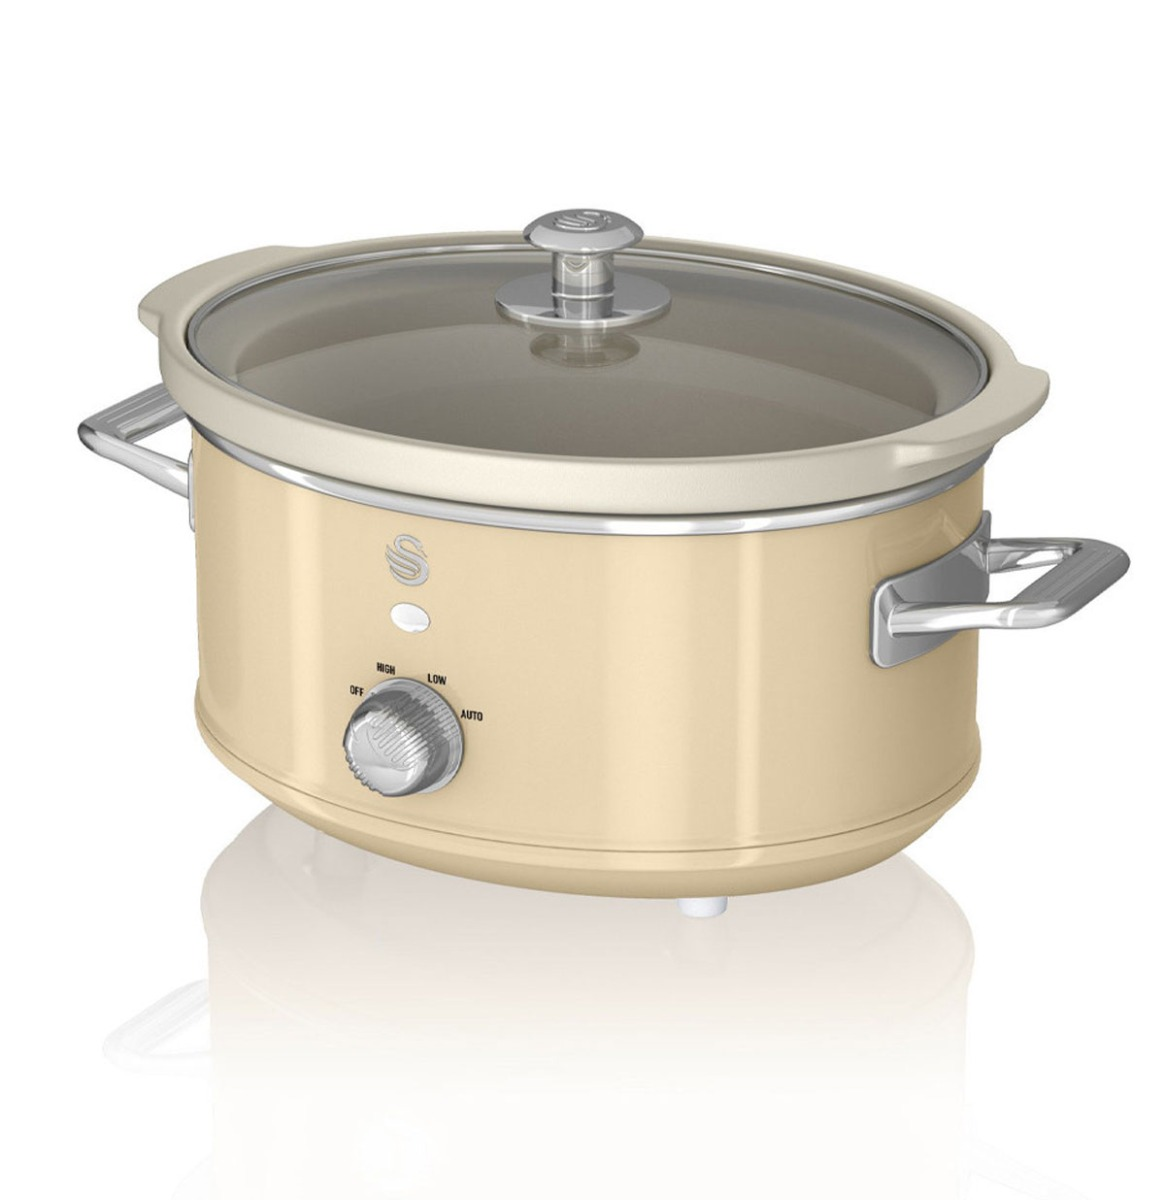 Swan Retro Slow Cooker - 3.5 Liter - Cr�me